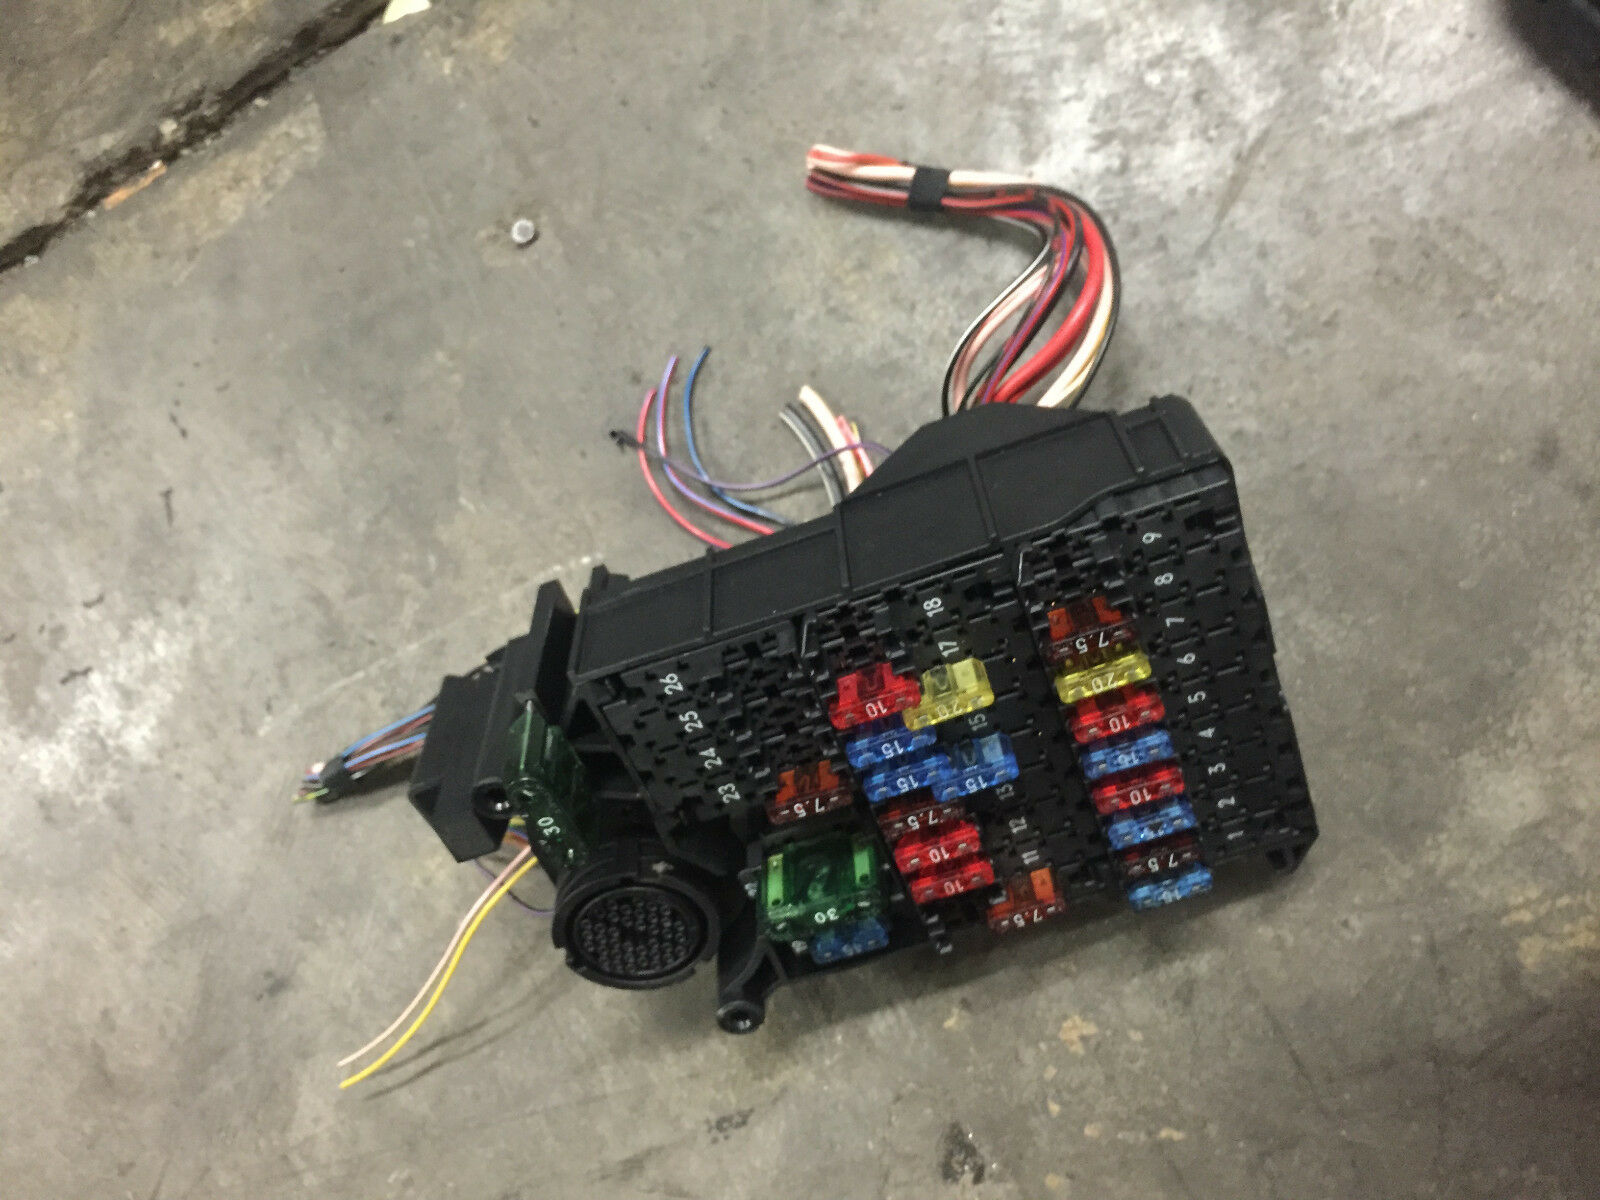 1997 Mercedes W210 E320 E420 #1 Oem Under Hood Fuse Box Sam Module 1 of  3Only 1 available 1997 Mercedes ...